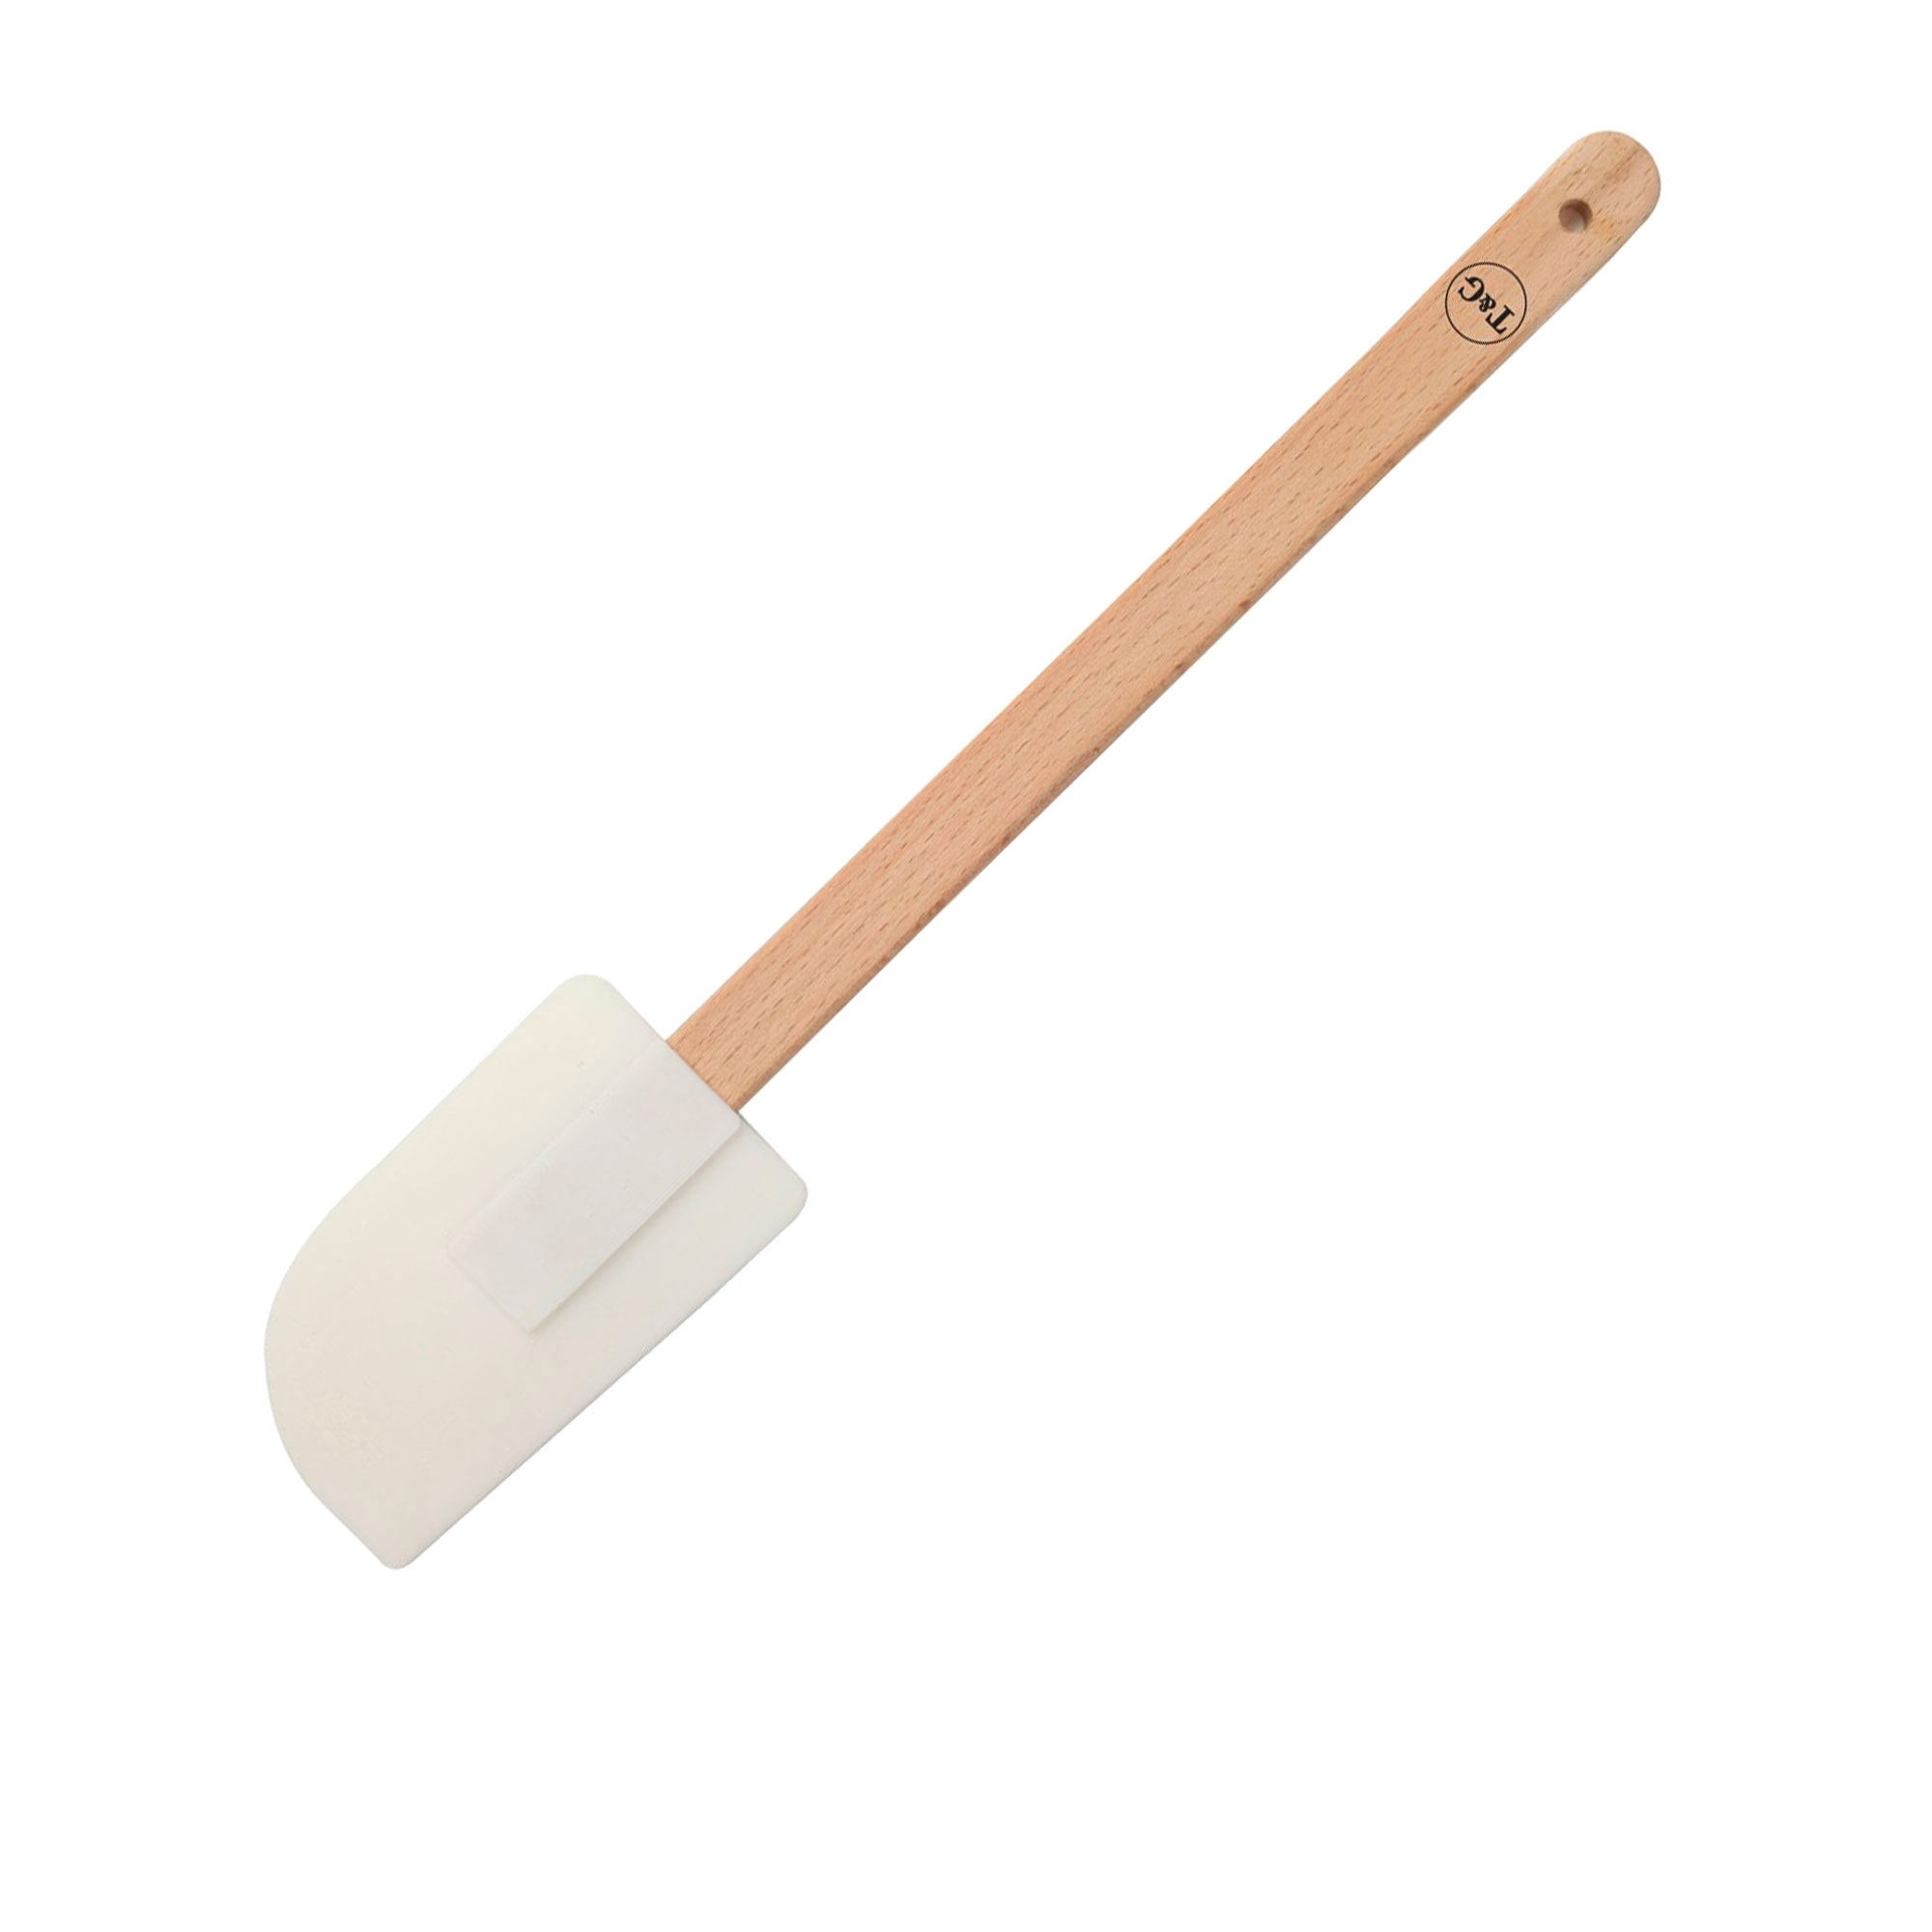 Wild Wood Wooden Spatula with Silicone Head 28.5cm